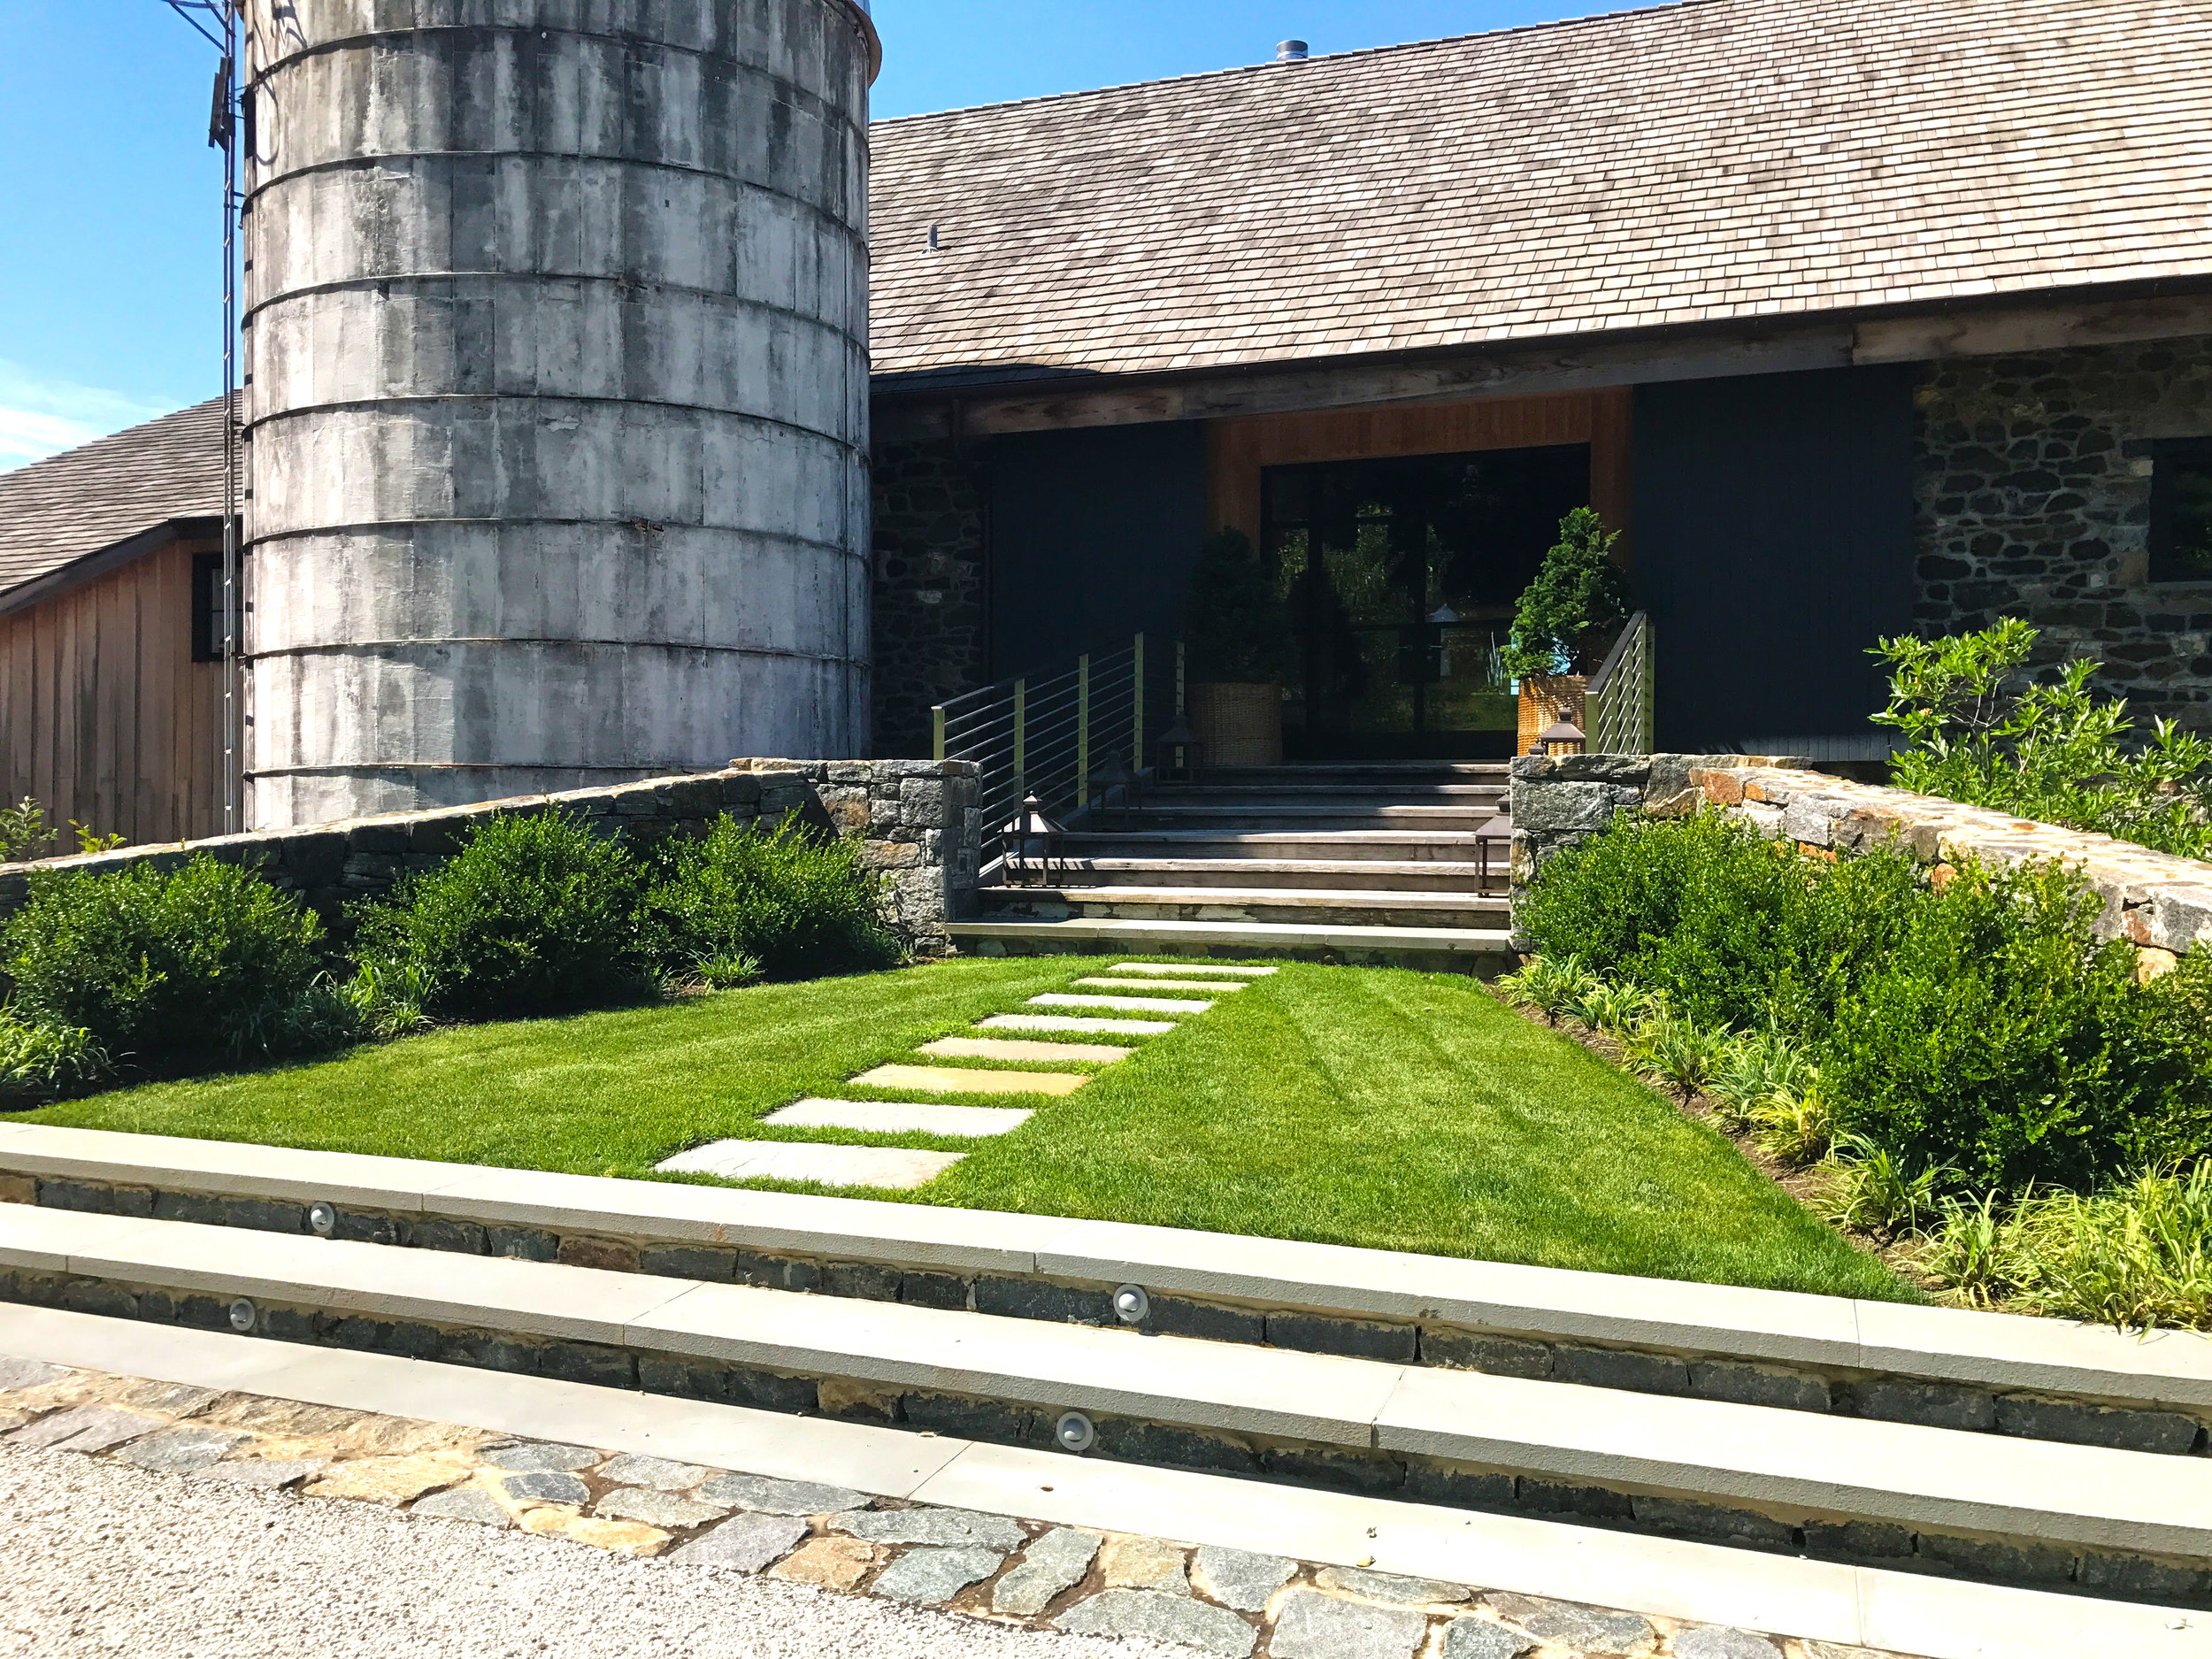 A lawn ramp to the front door stretches over a sunken shade garden and breakfast terrace.